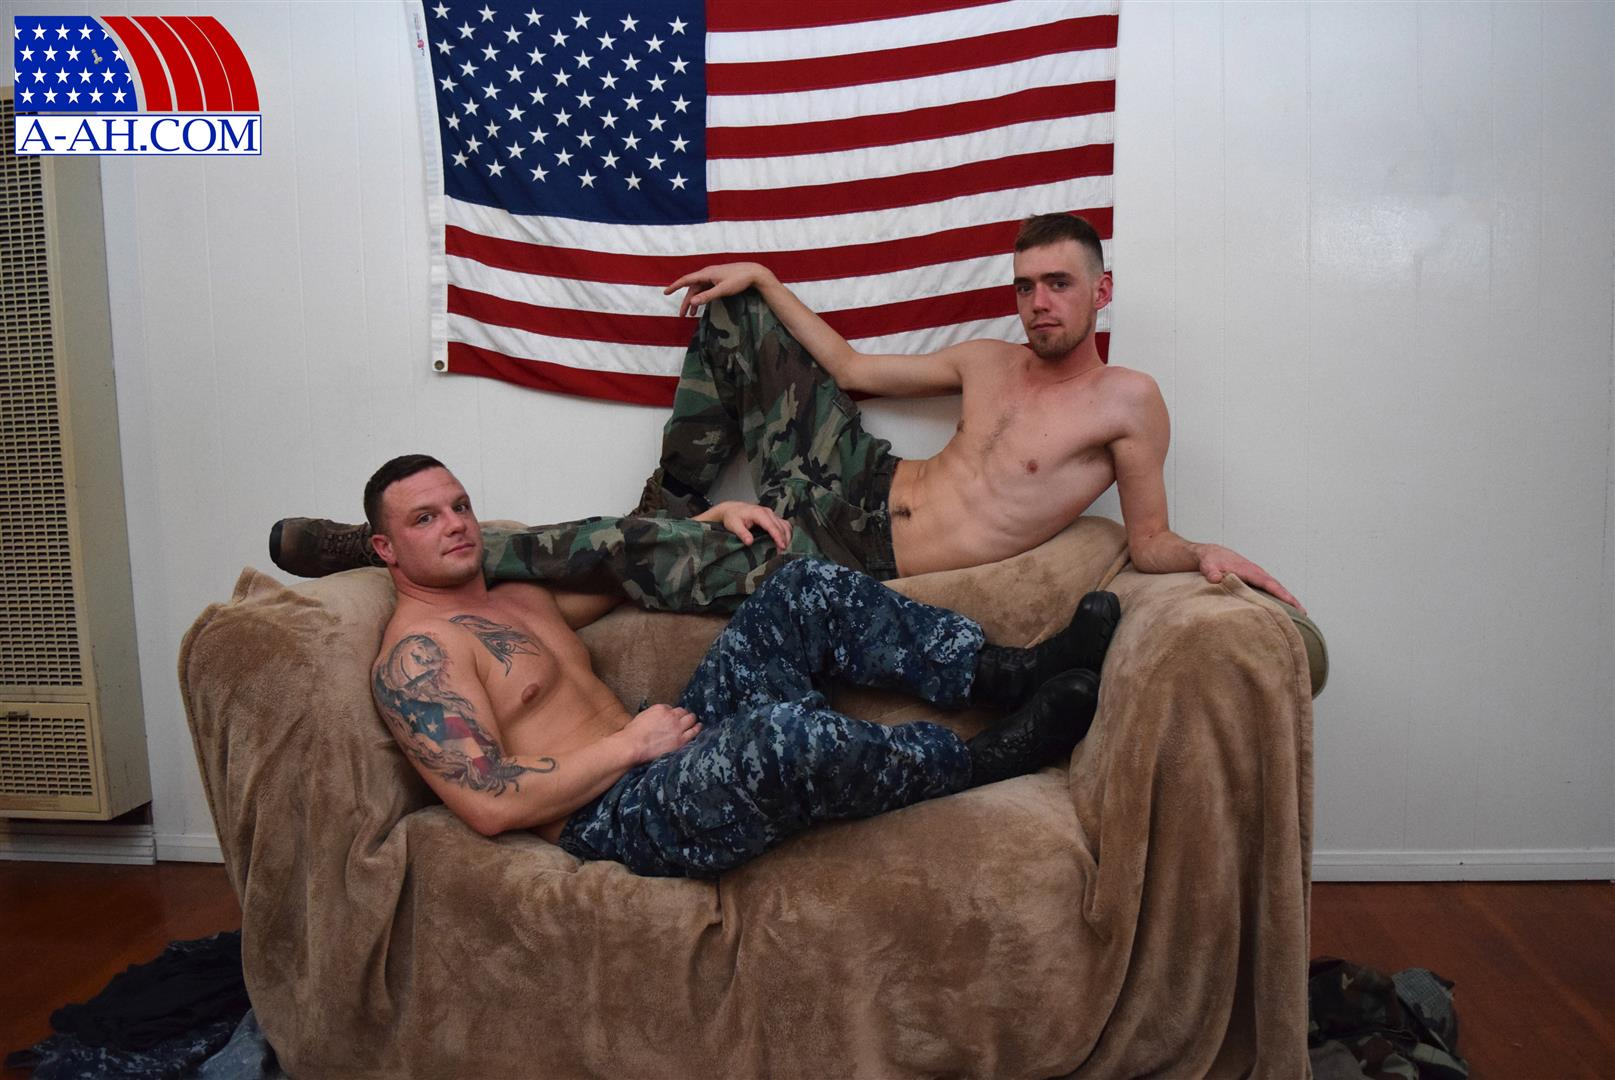 All-American-Heroes-Naked-Marine-Gets-Fucked-Bareback-Amateur-Gay-Porn-01 Army Corpsman Barebacks A Marine Corp Staff Sergeant